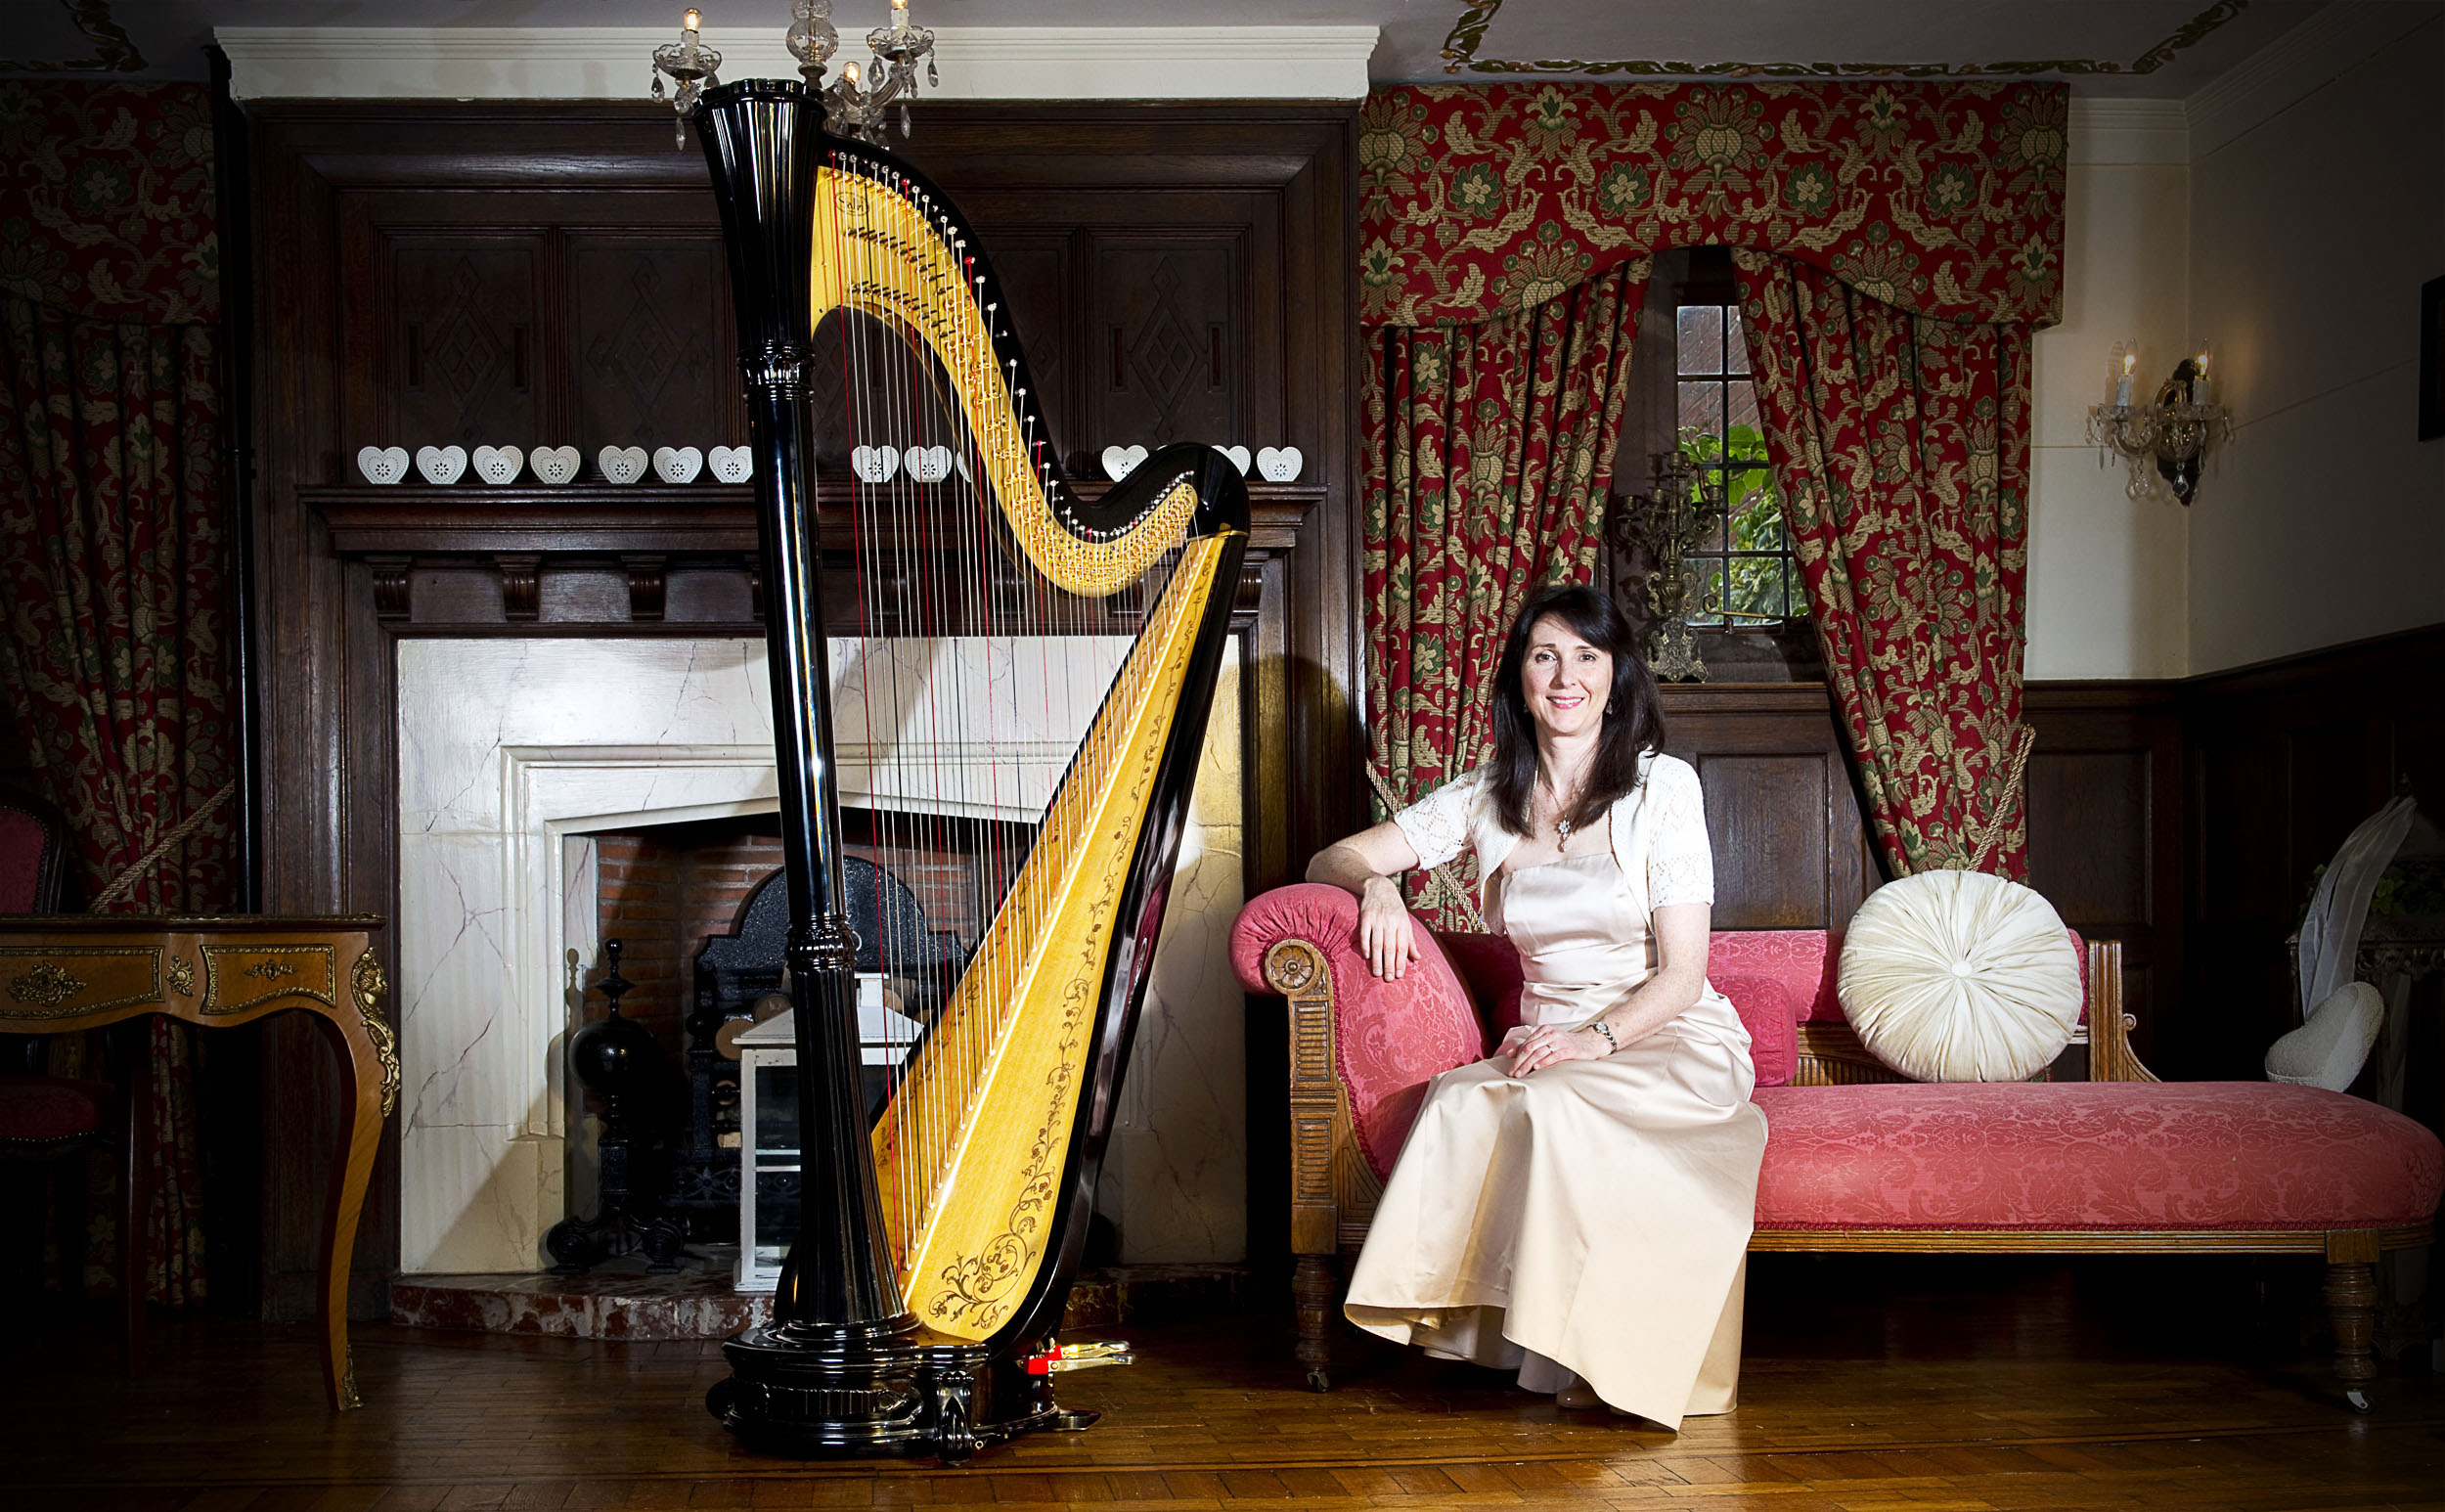 Oona is a successful freelance harpist